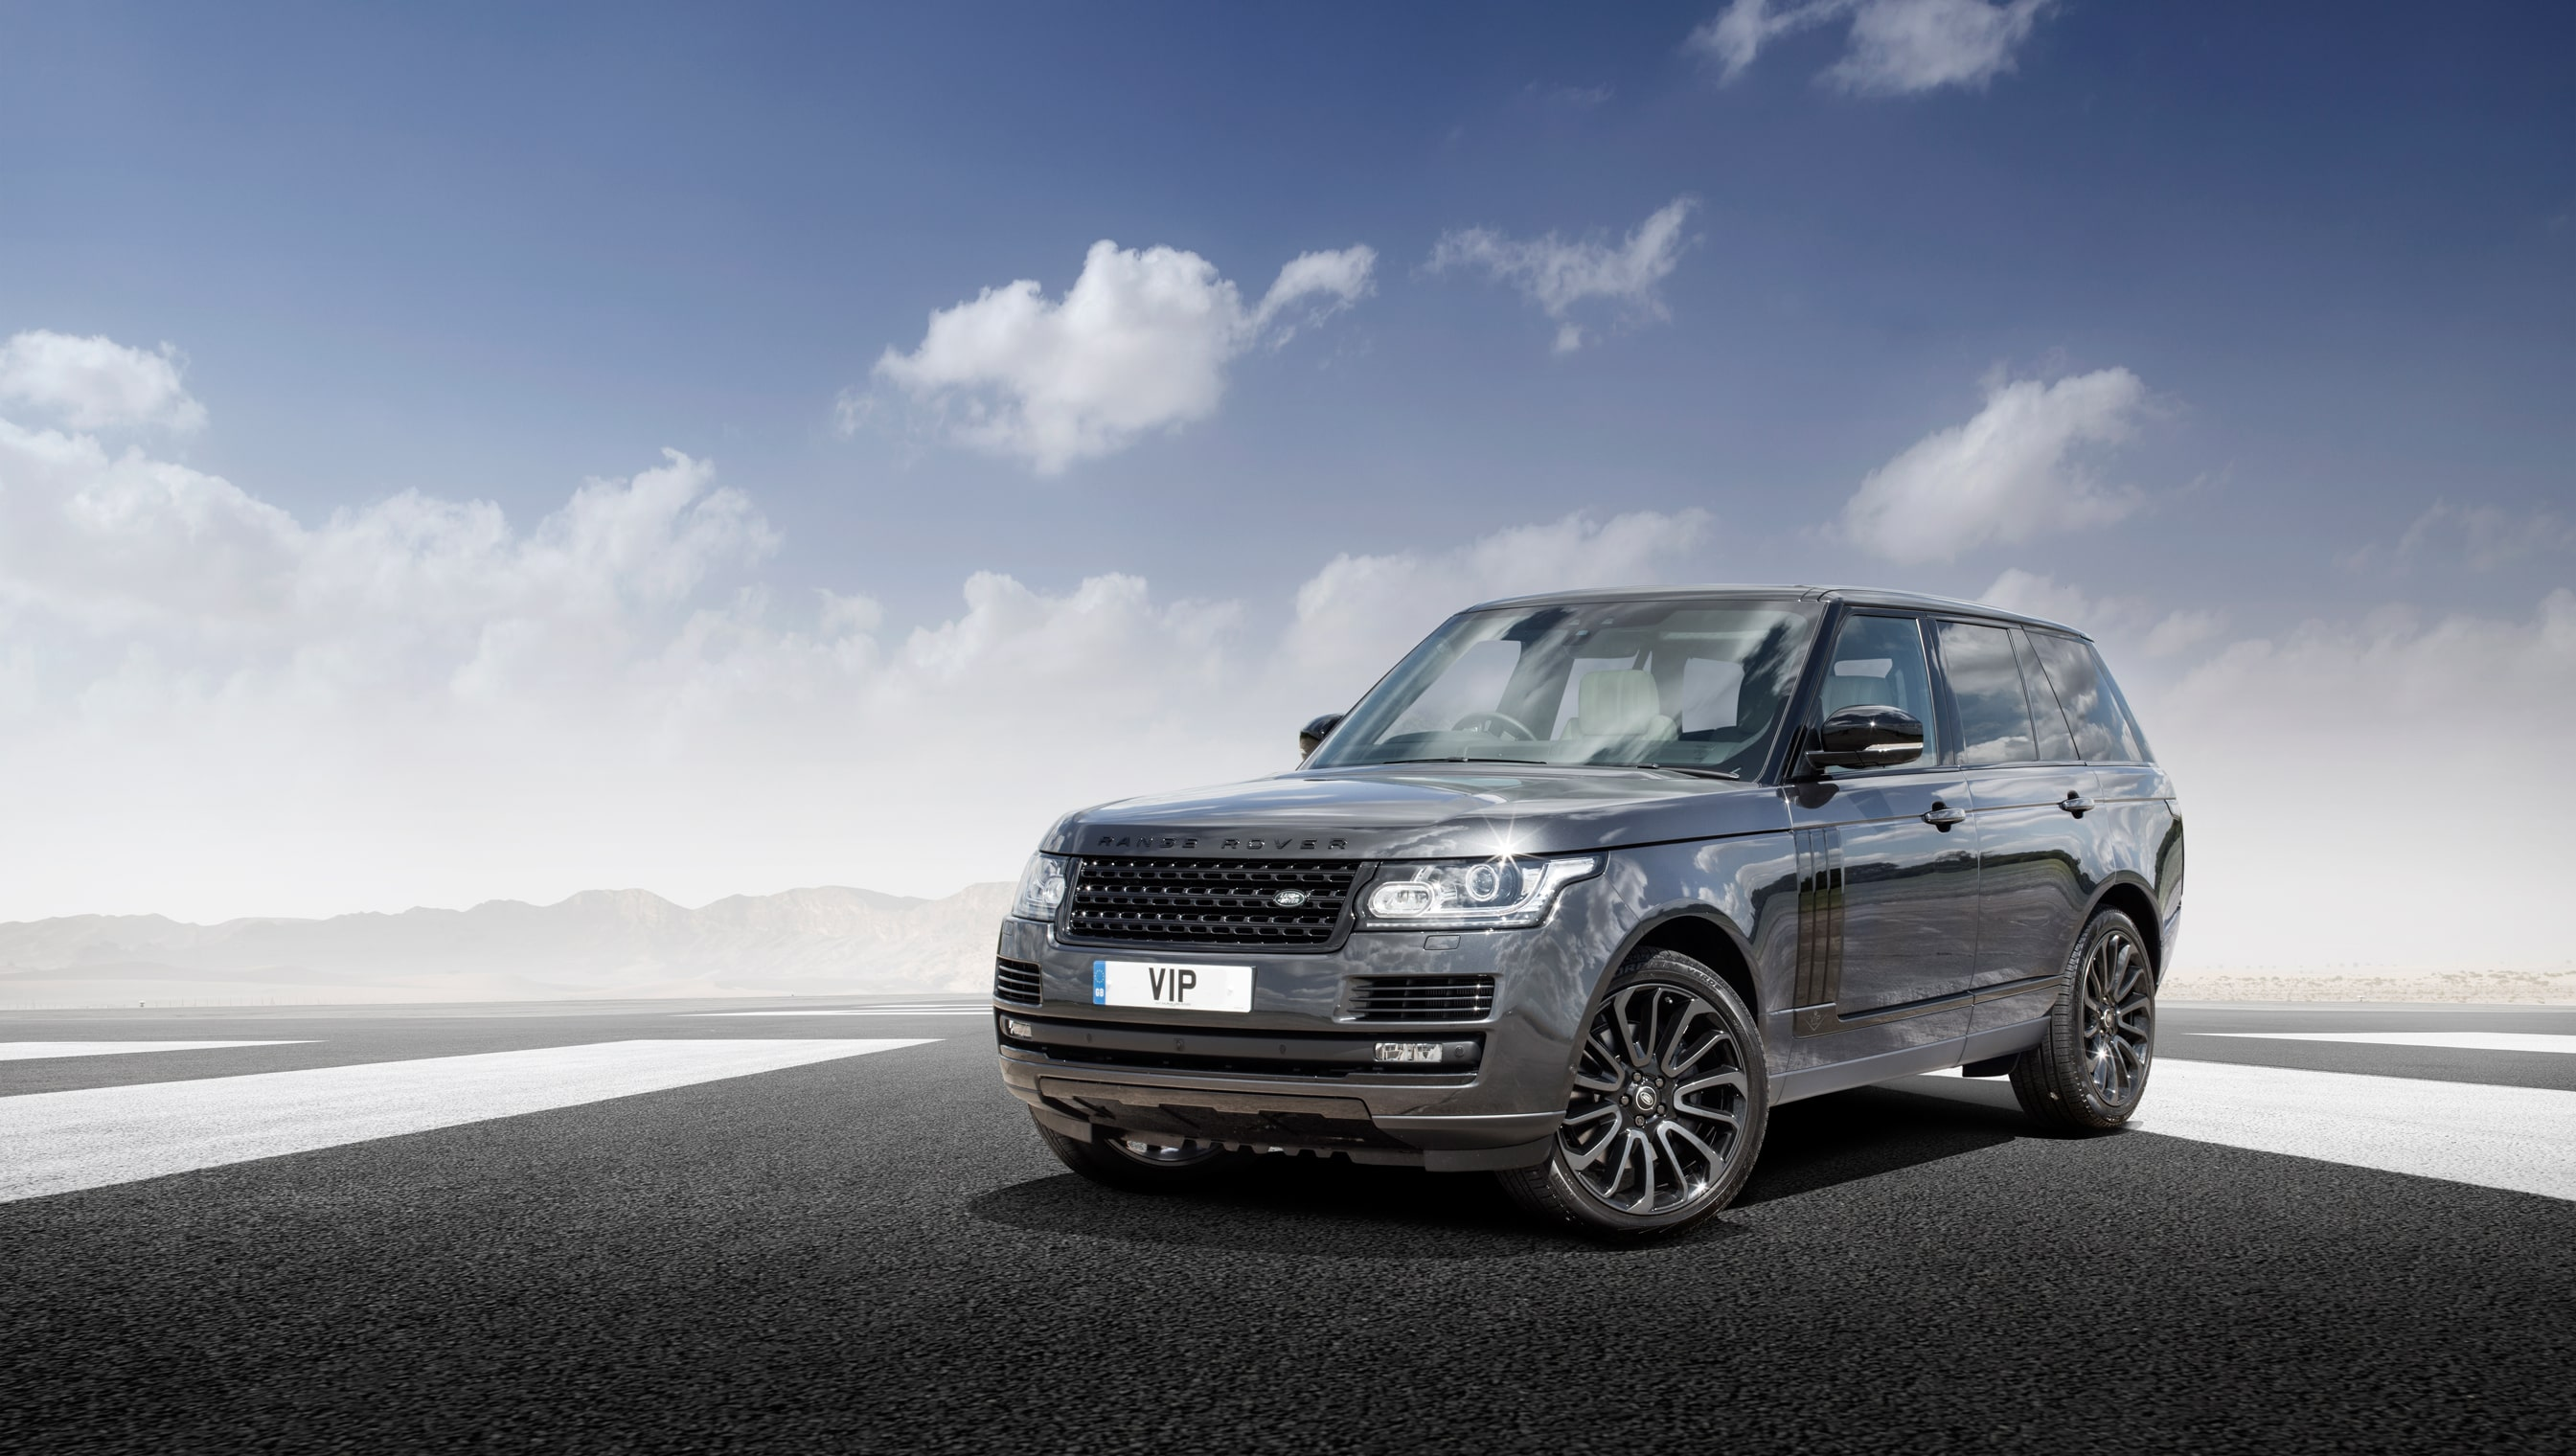 vip design range rover tuning and styling 600rrs. Black Bedroom Furniture Sets. Home Design Ideas